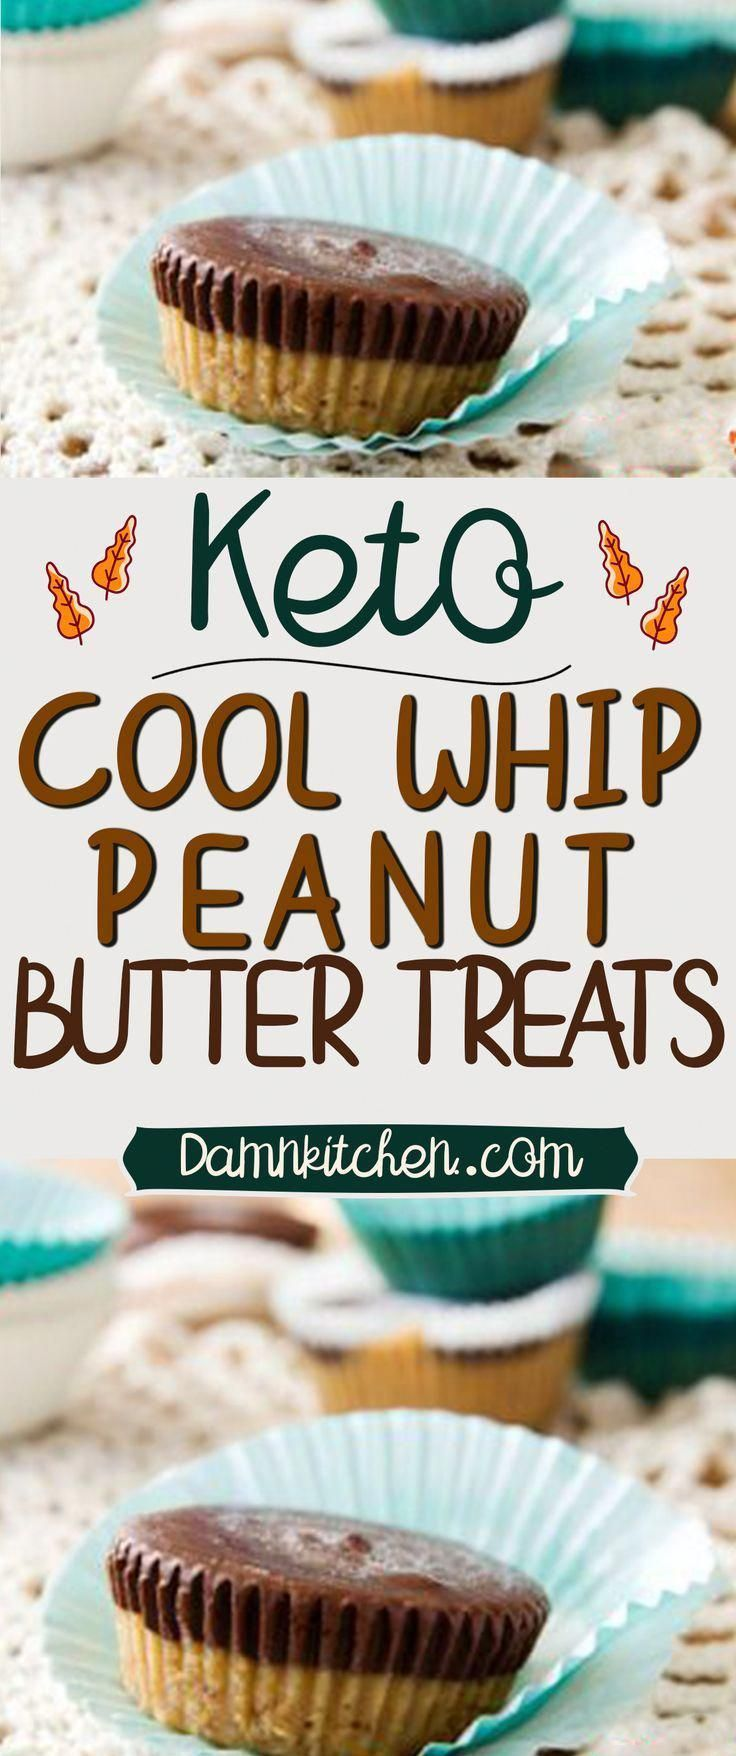 Cool Whip Peanut Butter Treats